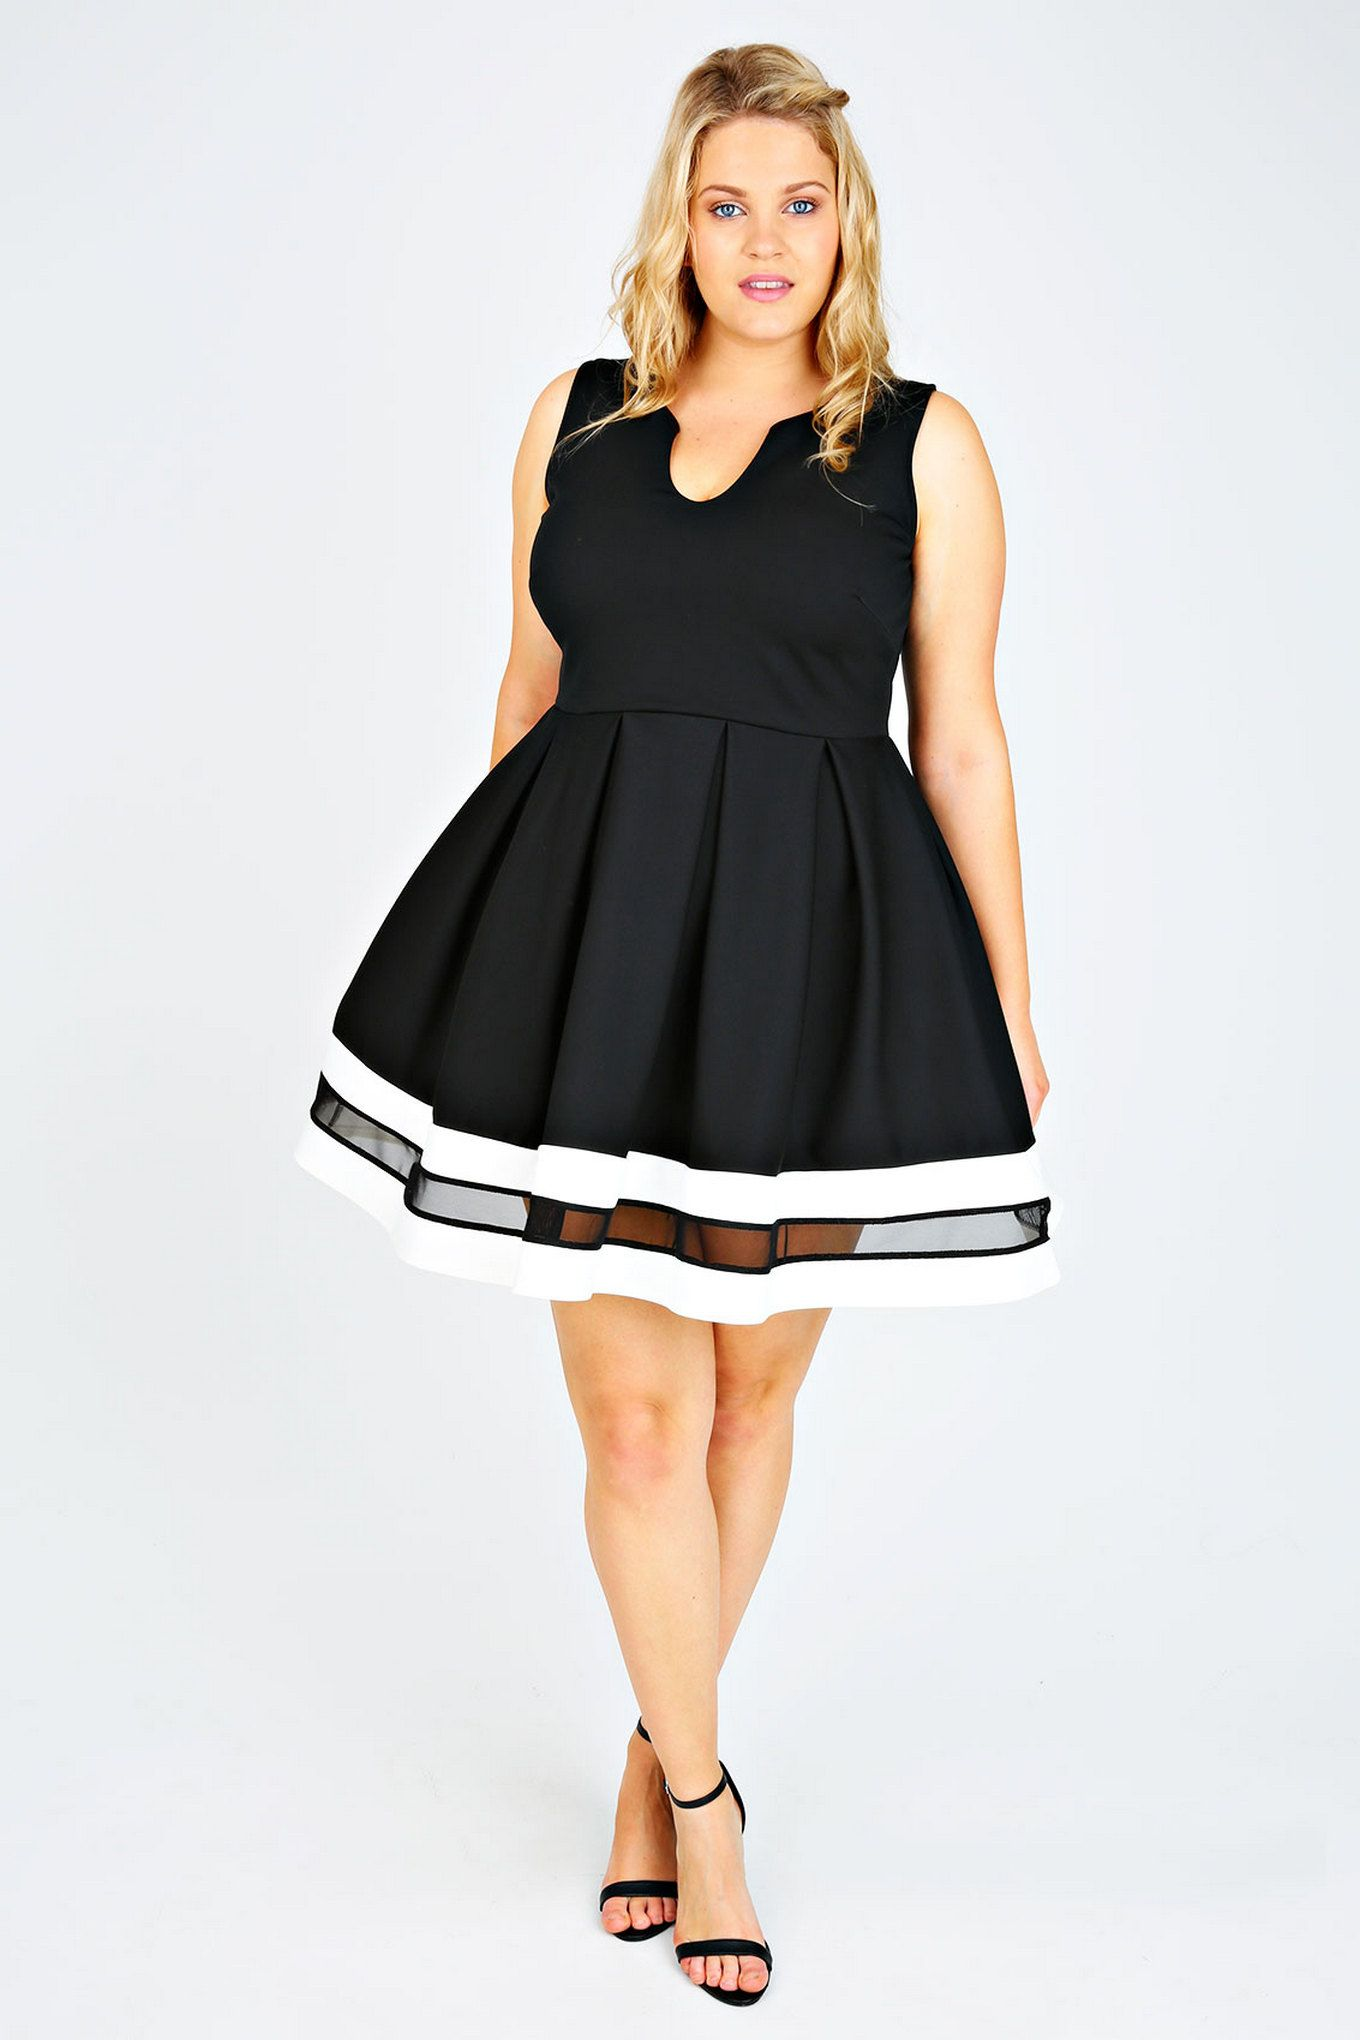 30 The Evolution of skater dress black and white | Plus size ...